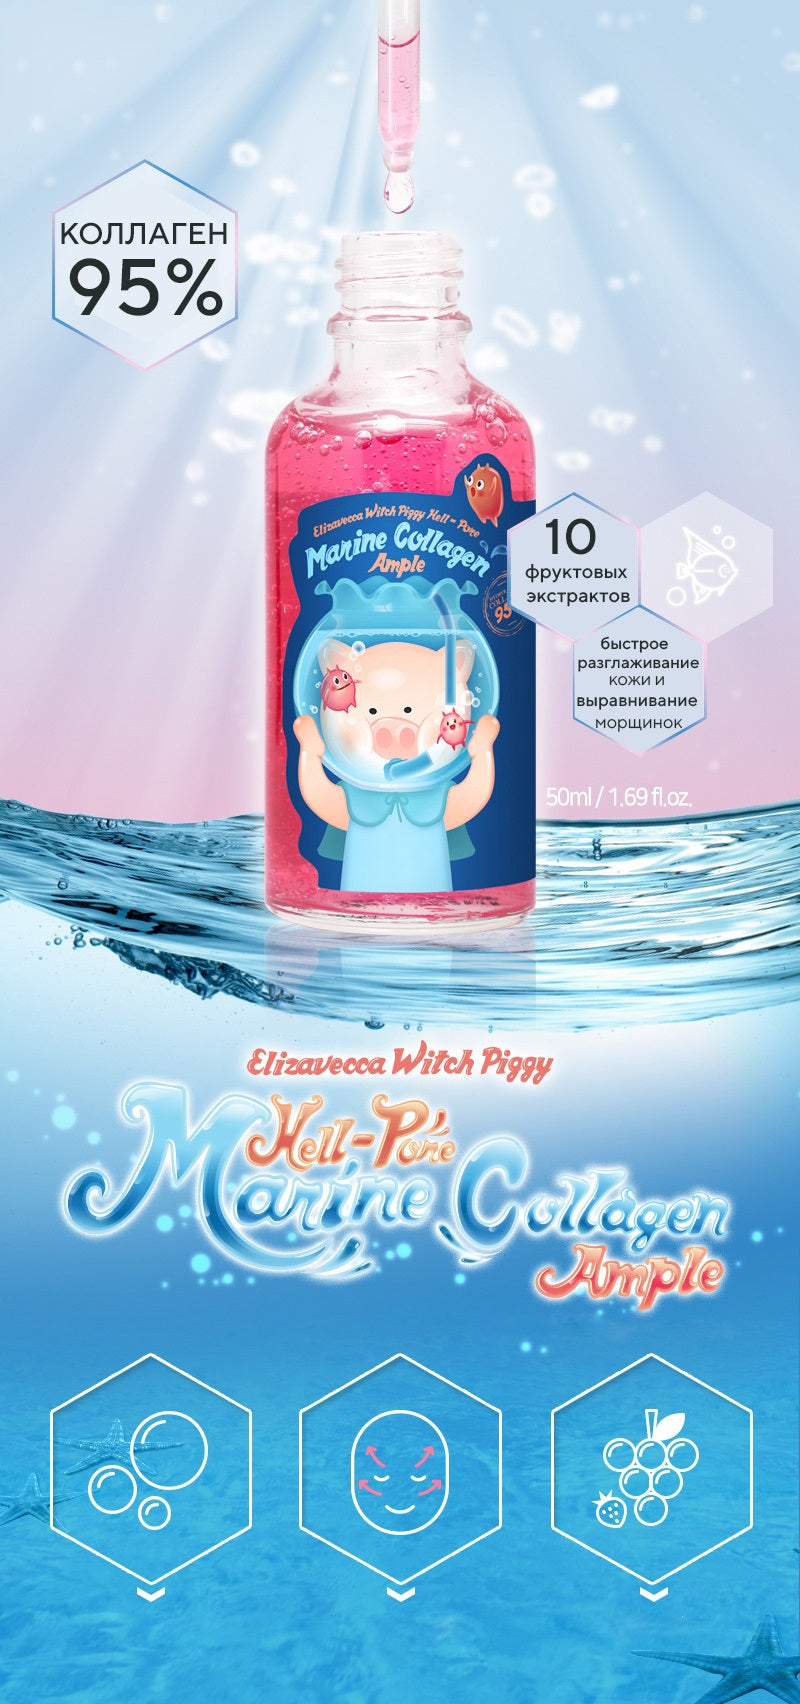 Syvorotka s morskim kollagenom 95% Elizavecca Witch Piggy Hell Pore Marine Collagen Ampoule 50 ml